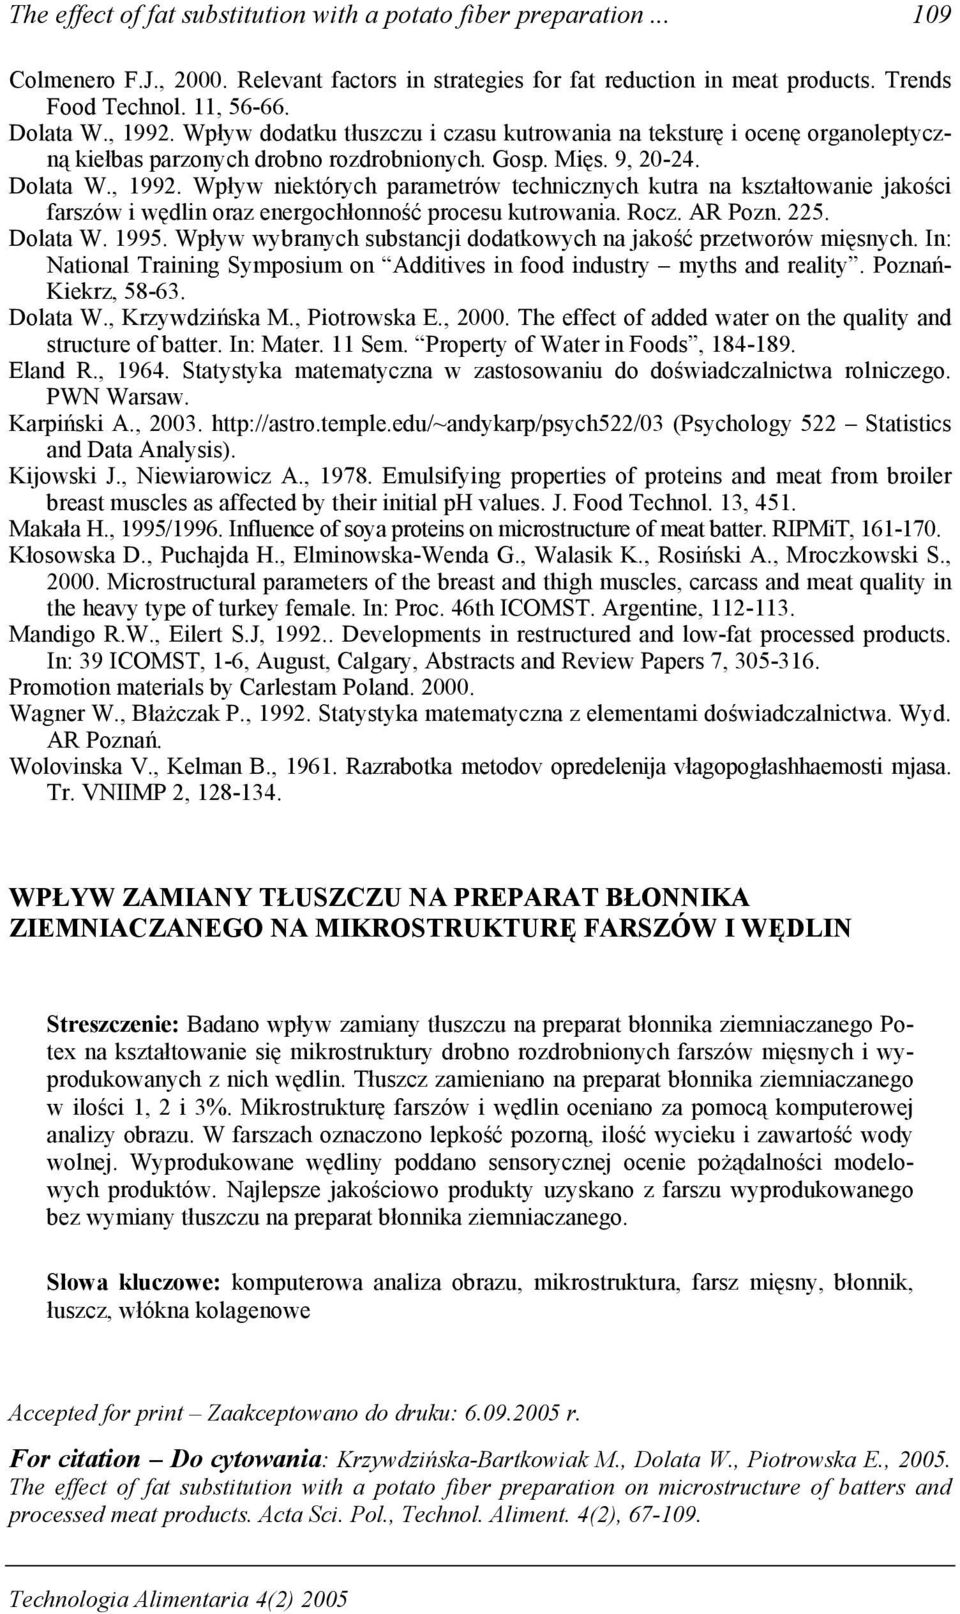 Rocz. AR Pozn. 225. Dolata W. 1995. Wpływ wybranych substancji dodatkowych na jakość przetworów mięsnych. In: National Training Symposium on Additives in food industry myths and reality.